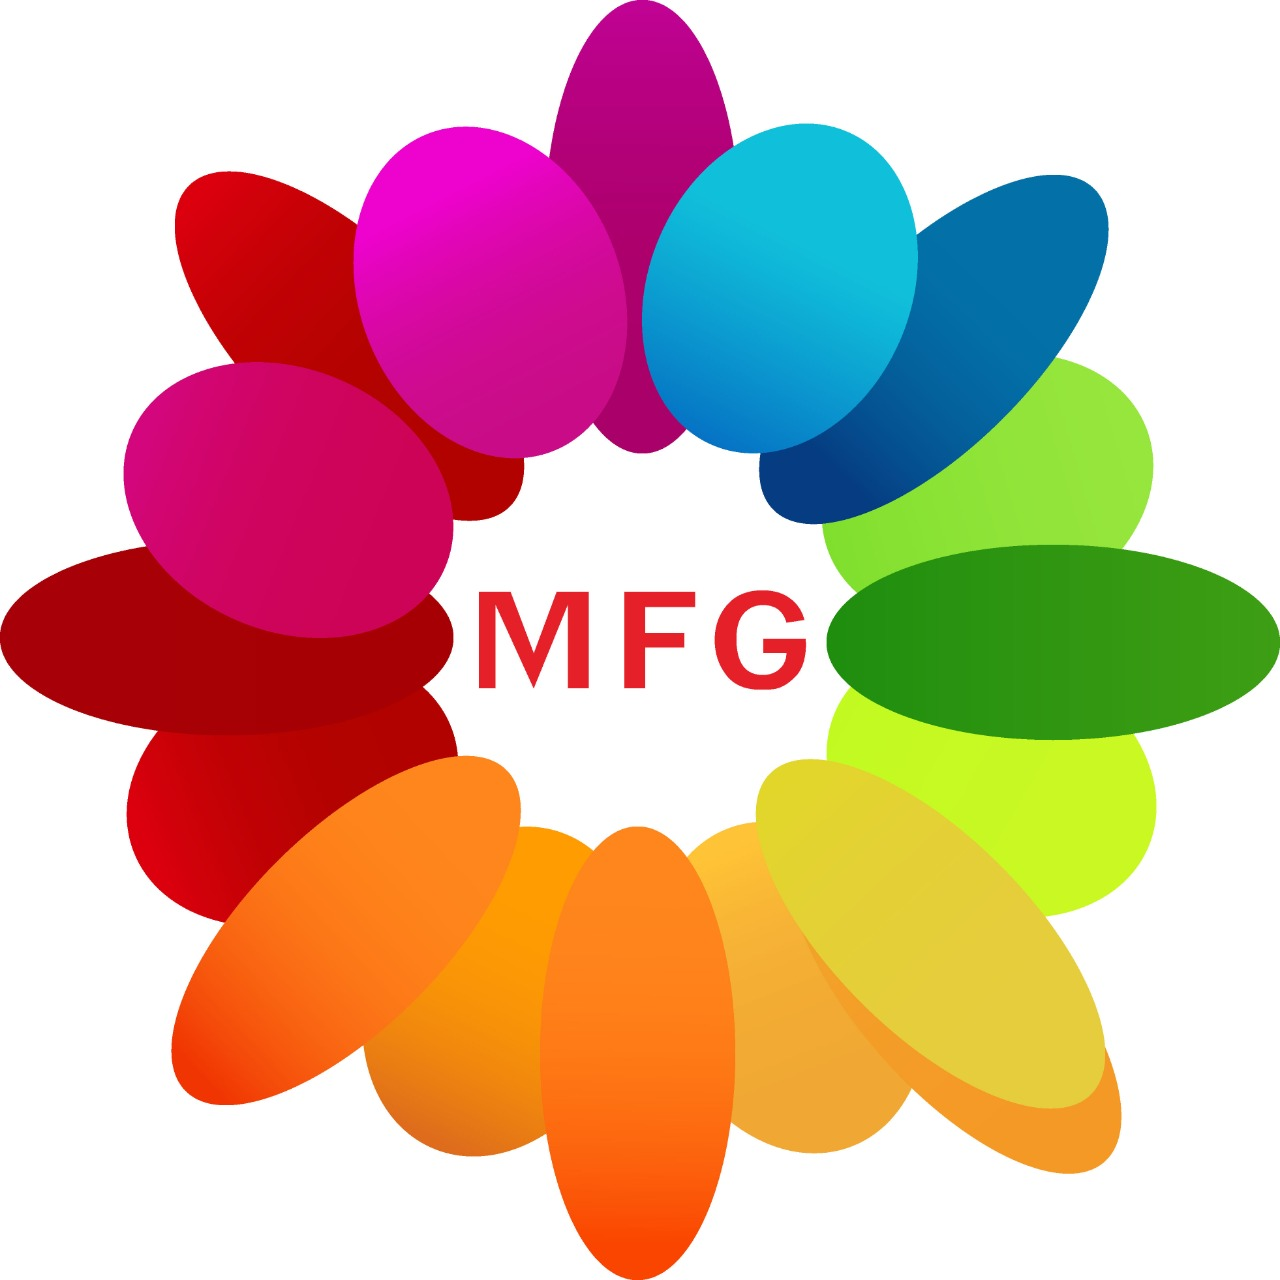 Heart Shape Black Forest Cake1 kg Fresh Cream Cake